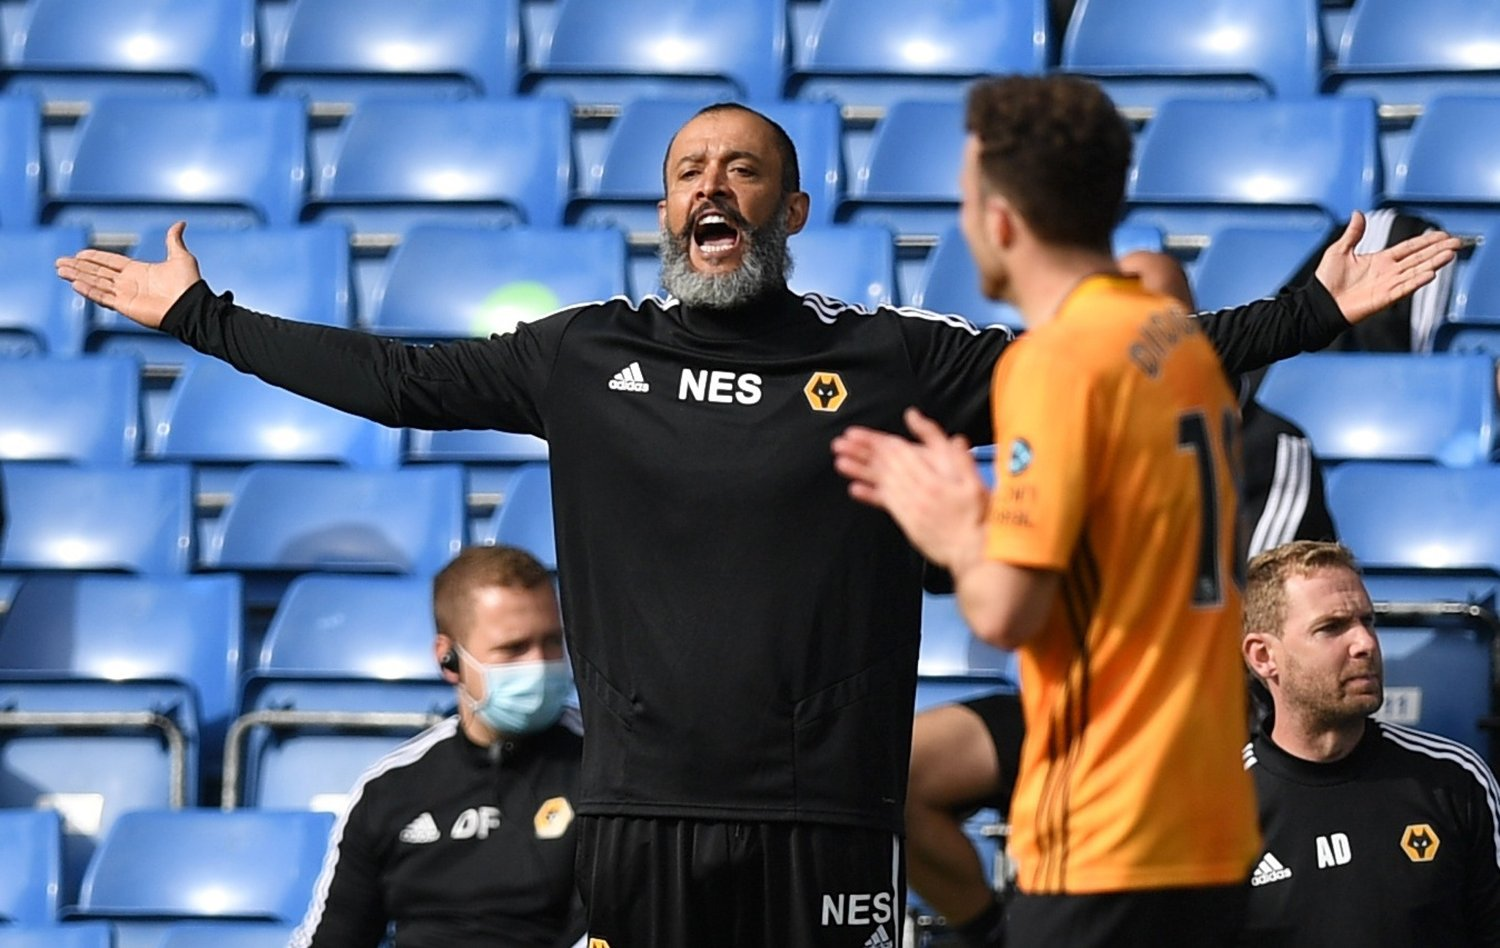 Soccer Football - Premier League - Chelsea v Wolverhampton Wanderers - Stamford Bridge, London, Britain - July 26, 2020 Wolverhampton Wanderers manager Nuno Espirito Santo reacts, as play resumes behind closed doors following the outbreak of the coronavirus disease Pool via REUTERS/Daniel Leal-Olivas EDITORIAL USE ONLY. No use with unauthorized audio, video, data, fixture lists, club/league logos or 'live' services. Online in-match use limited to 75 images, no video emulation. No use in betting, games or single club/league/player publications. Please contact your account representative for further details.